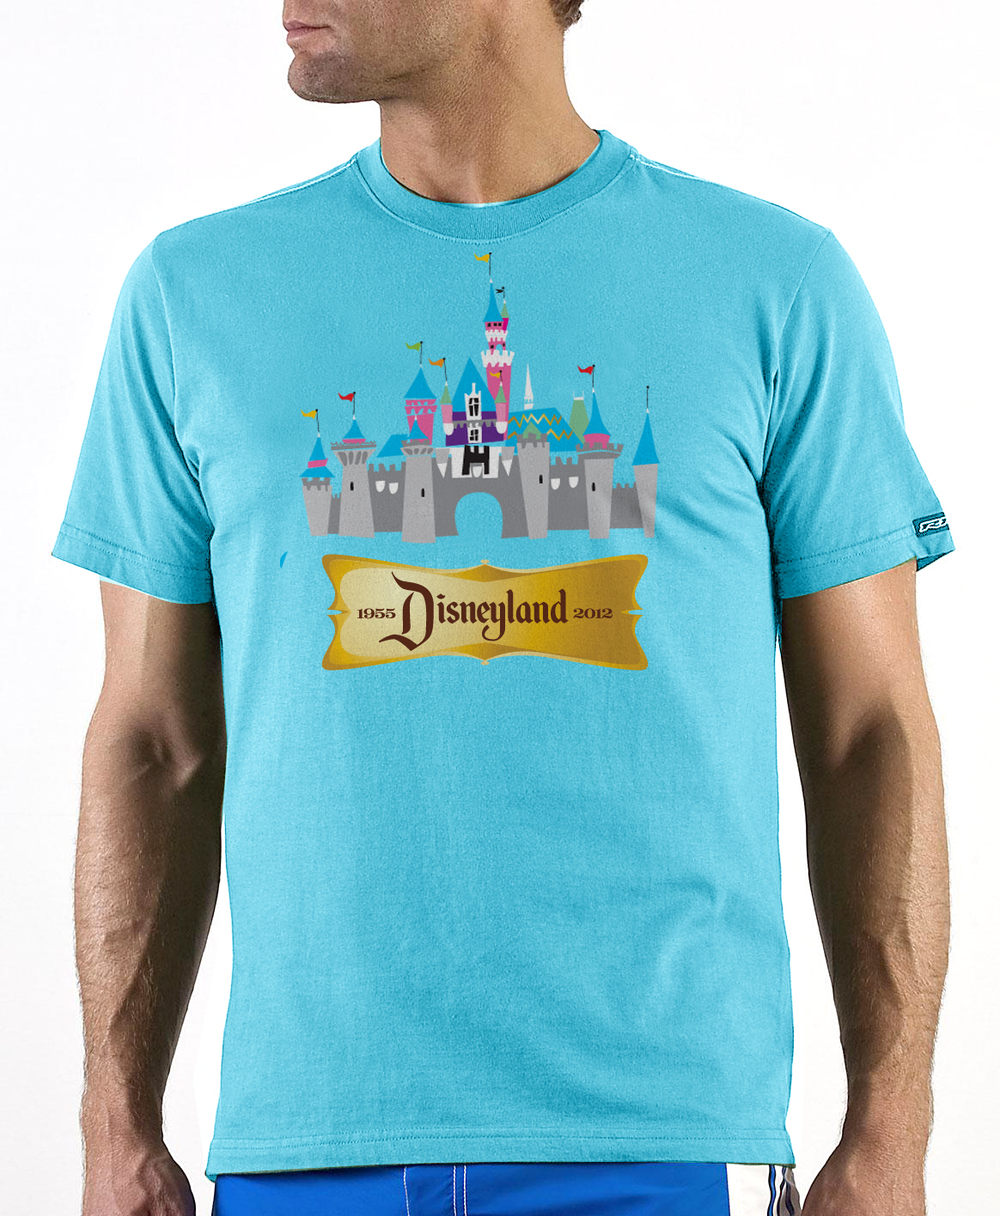 Disneyland-map-t-shirt2.jpg